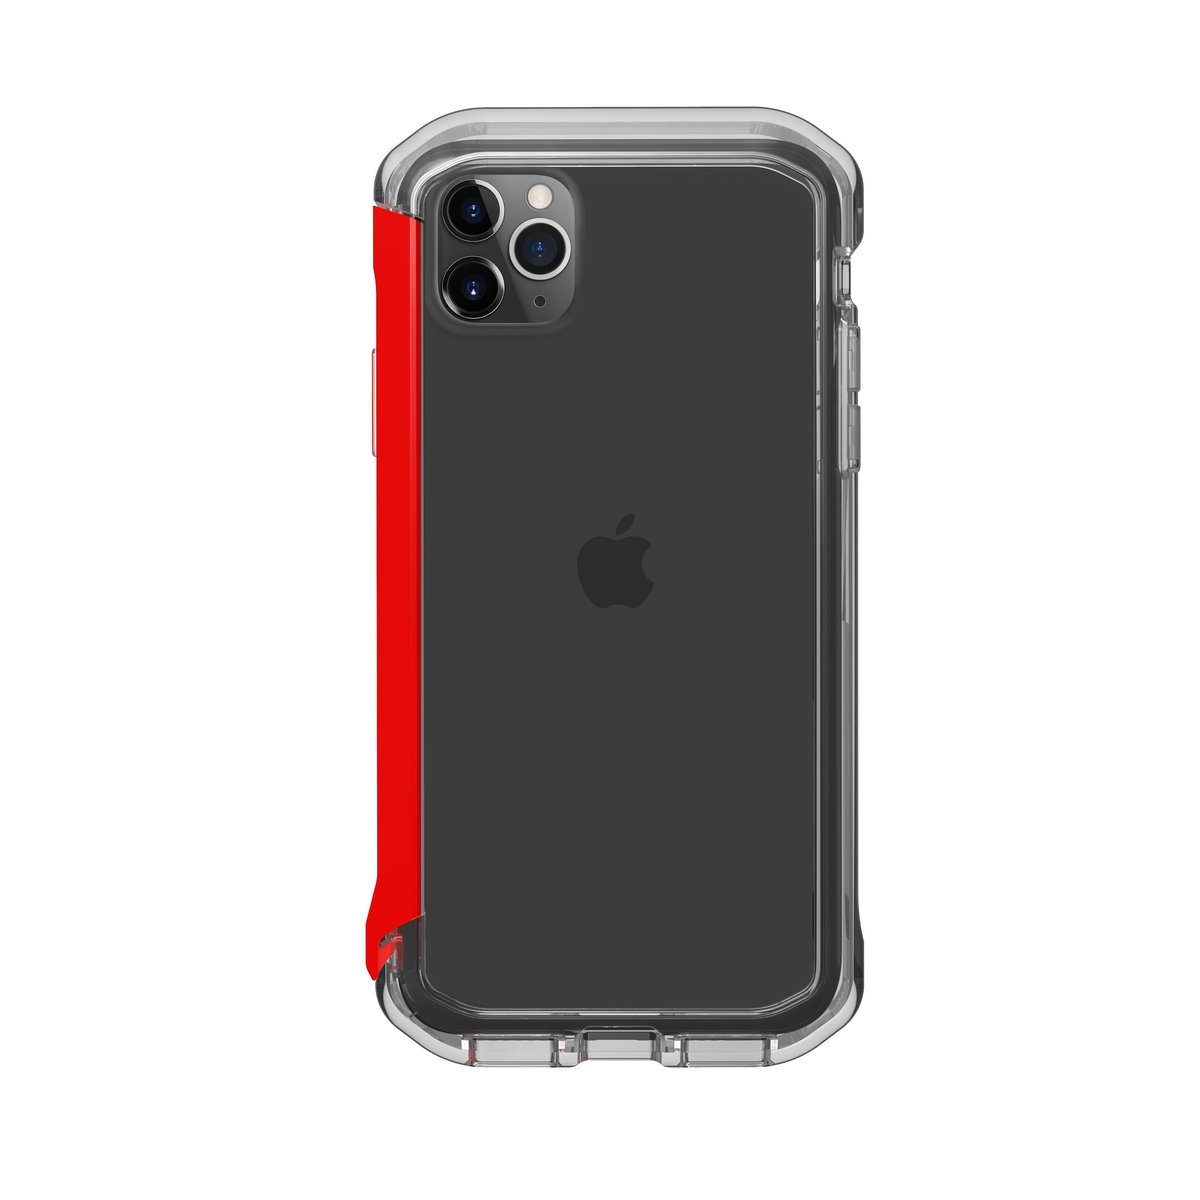 Element Case Rail iPhone 11 Pro Max 手機殼 - 透明/紅色